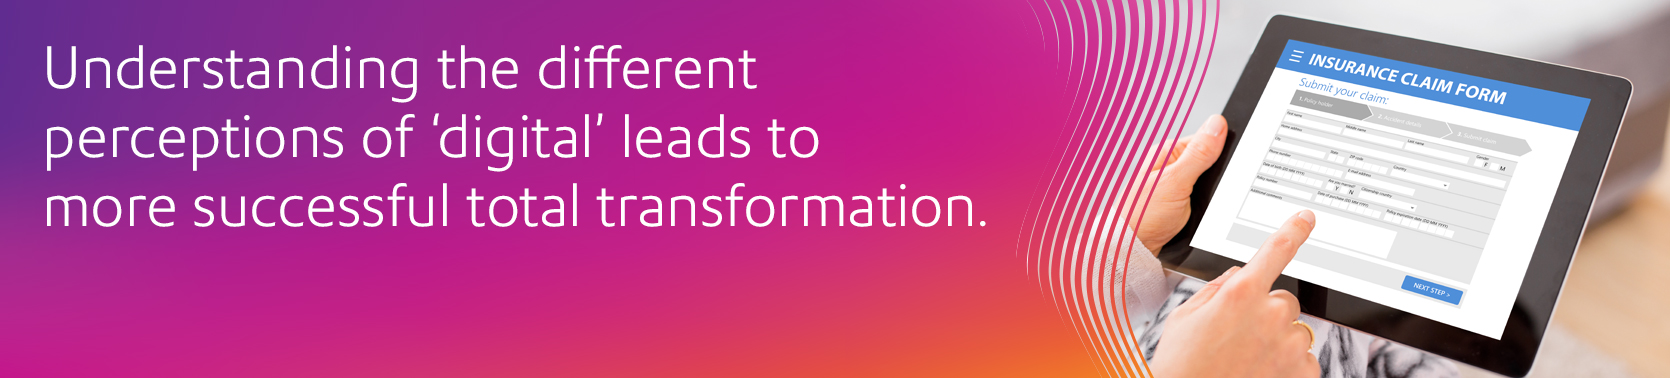 Understanding the different perceptions of digital leads to more successful total transformation